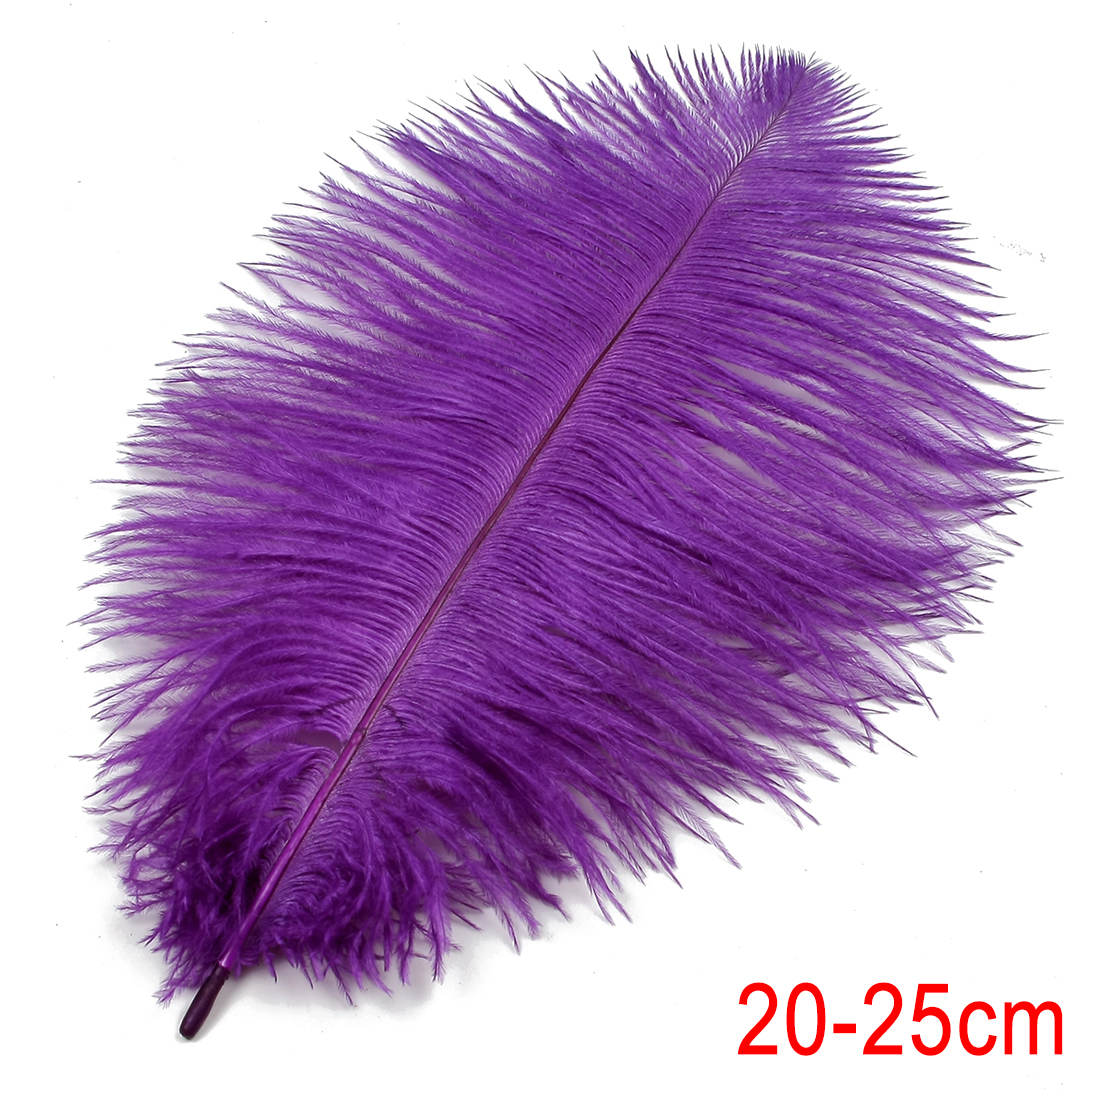 8-10 inch / 20-25cm Ostrich Feather for Wedding Party Decoration Purple